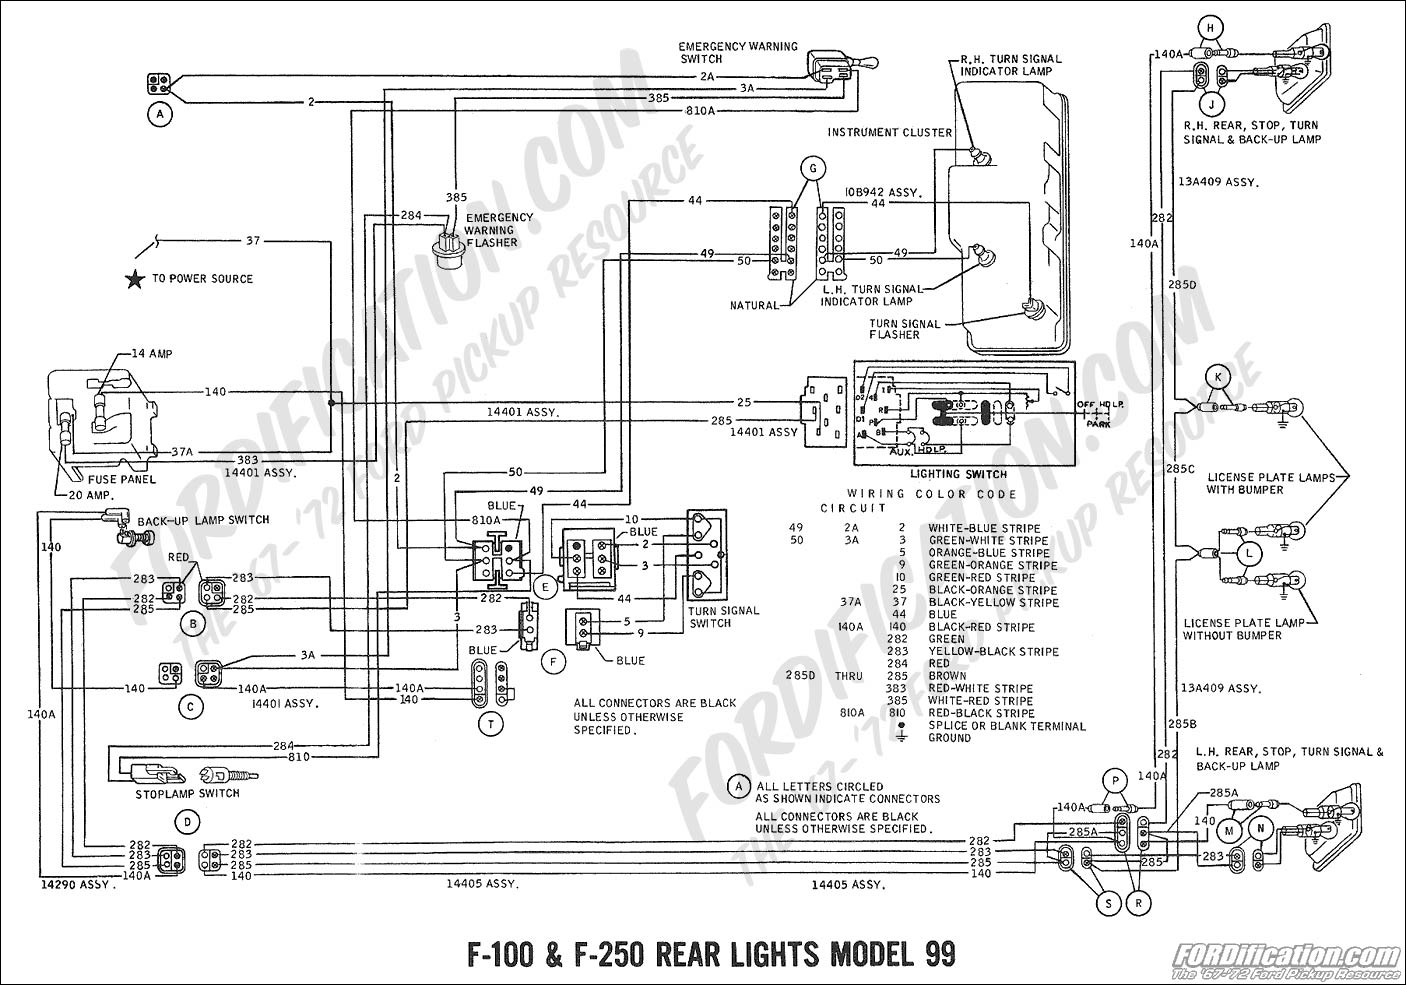 72 El Camino Wiring Diagram additionally Israel air force postcards moreover HW896 together with F3584 as well Drive shaft basics. on 65 mustang a code